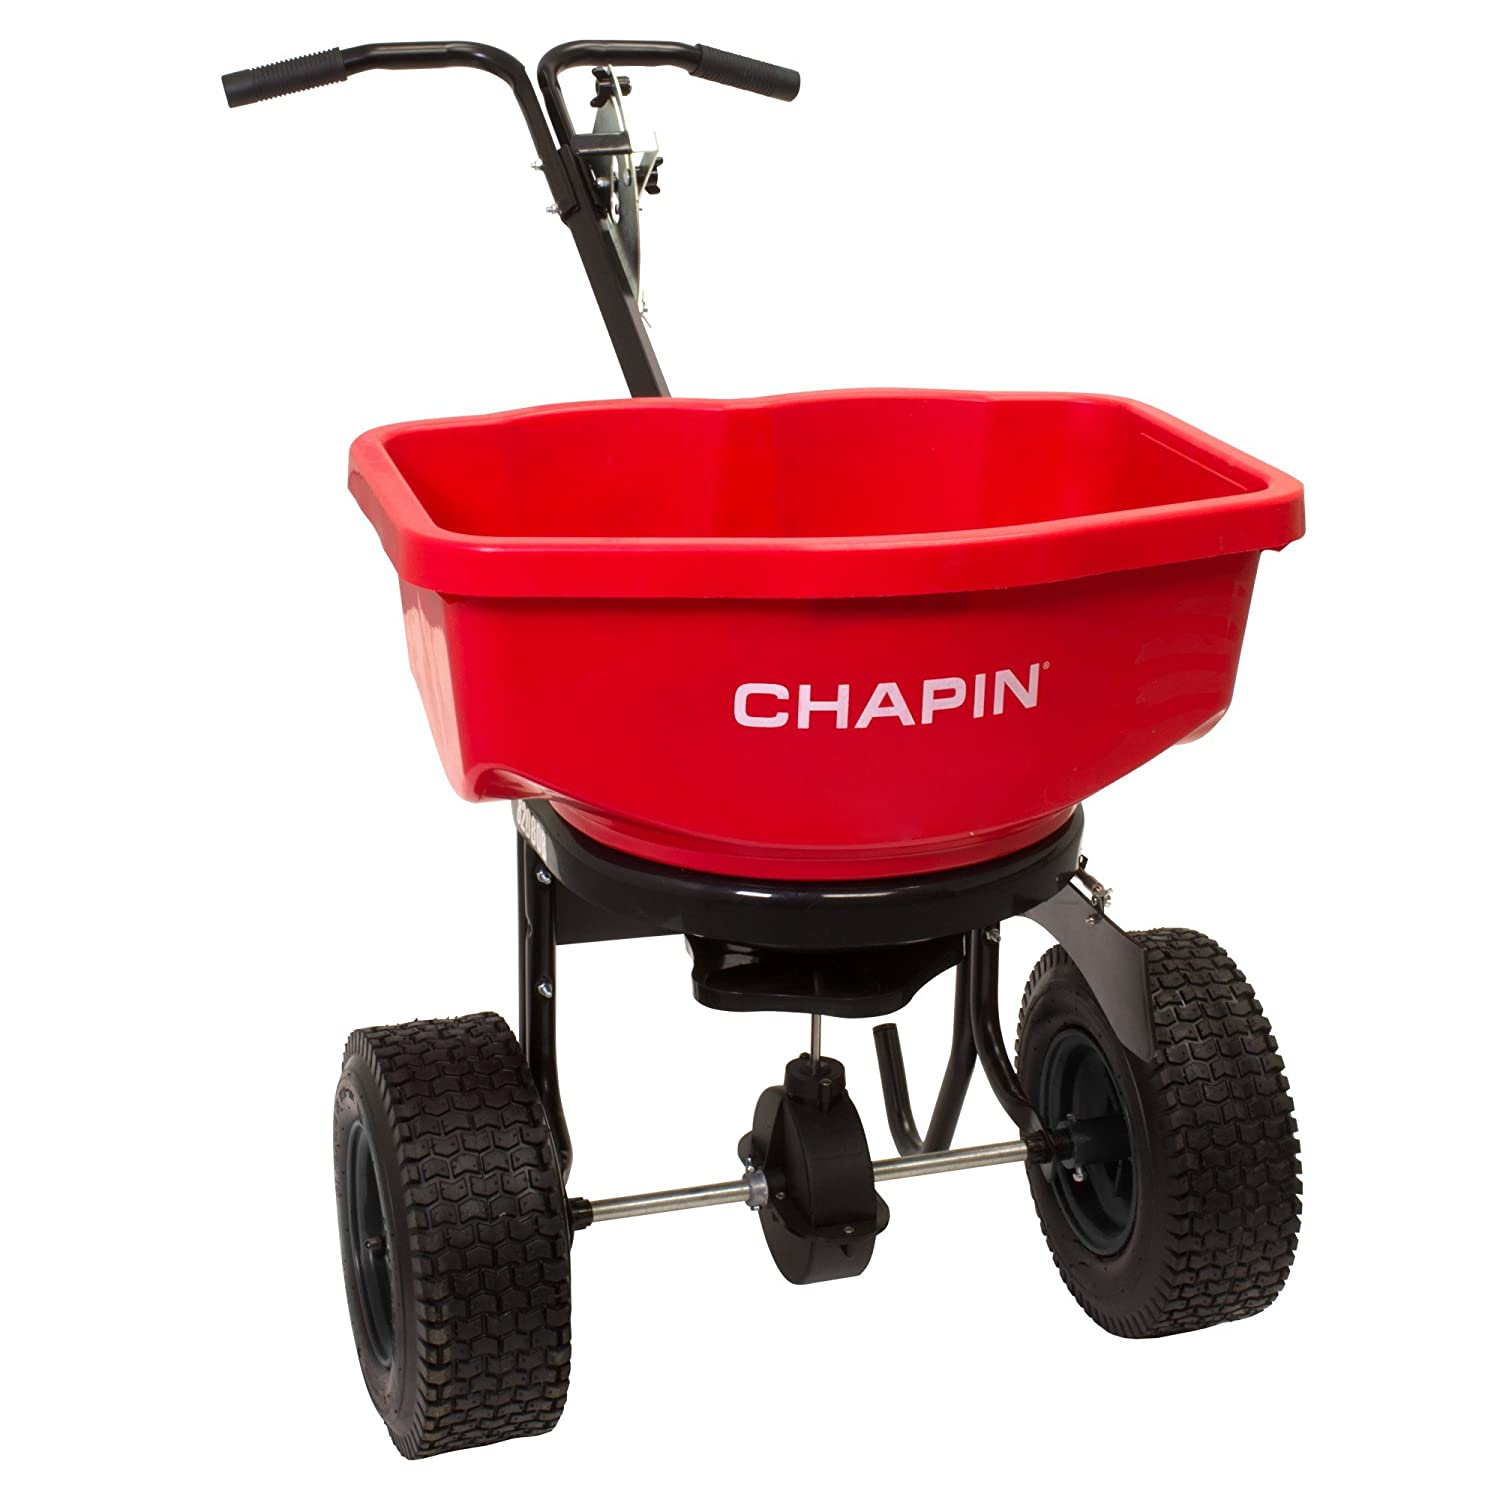 Chapin 82080 80-Pound All Season Professional Broadcast Spreader, (1 Spreader/Package) Chapin International 82080B